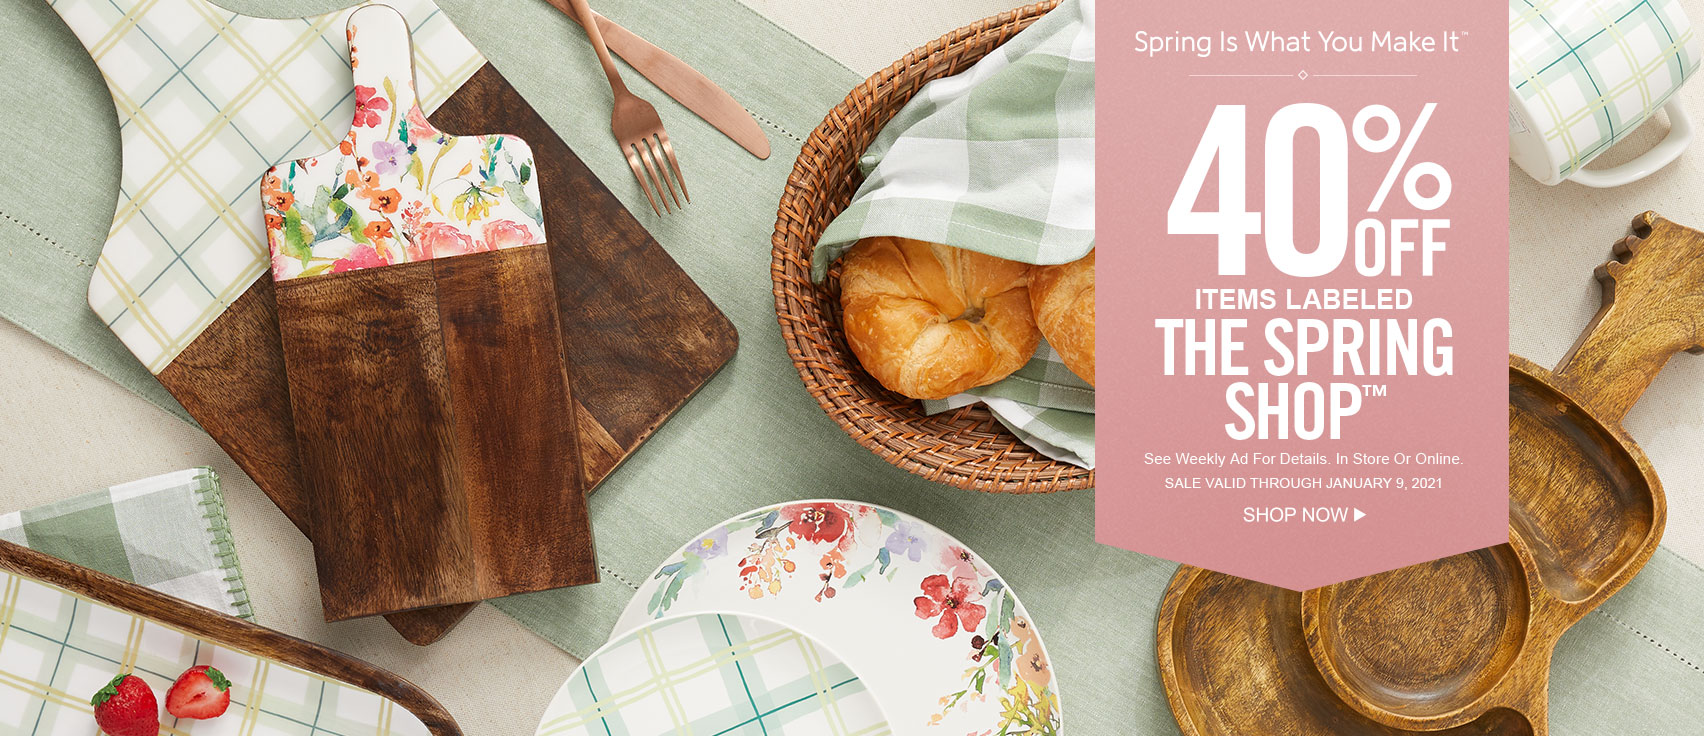 40% Off Items Labeled The Spring Shop at Hobby Lobby!